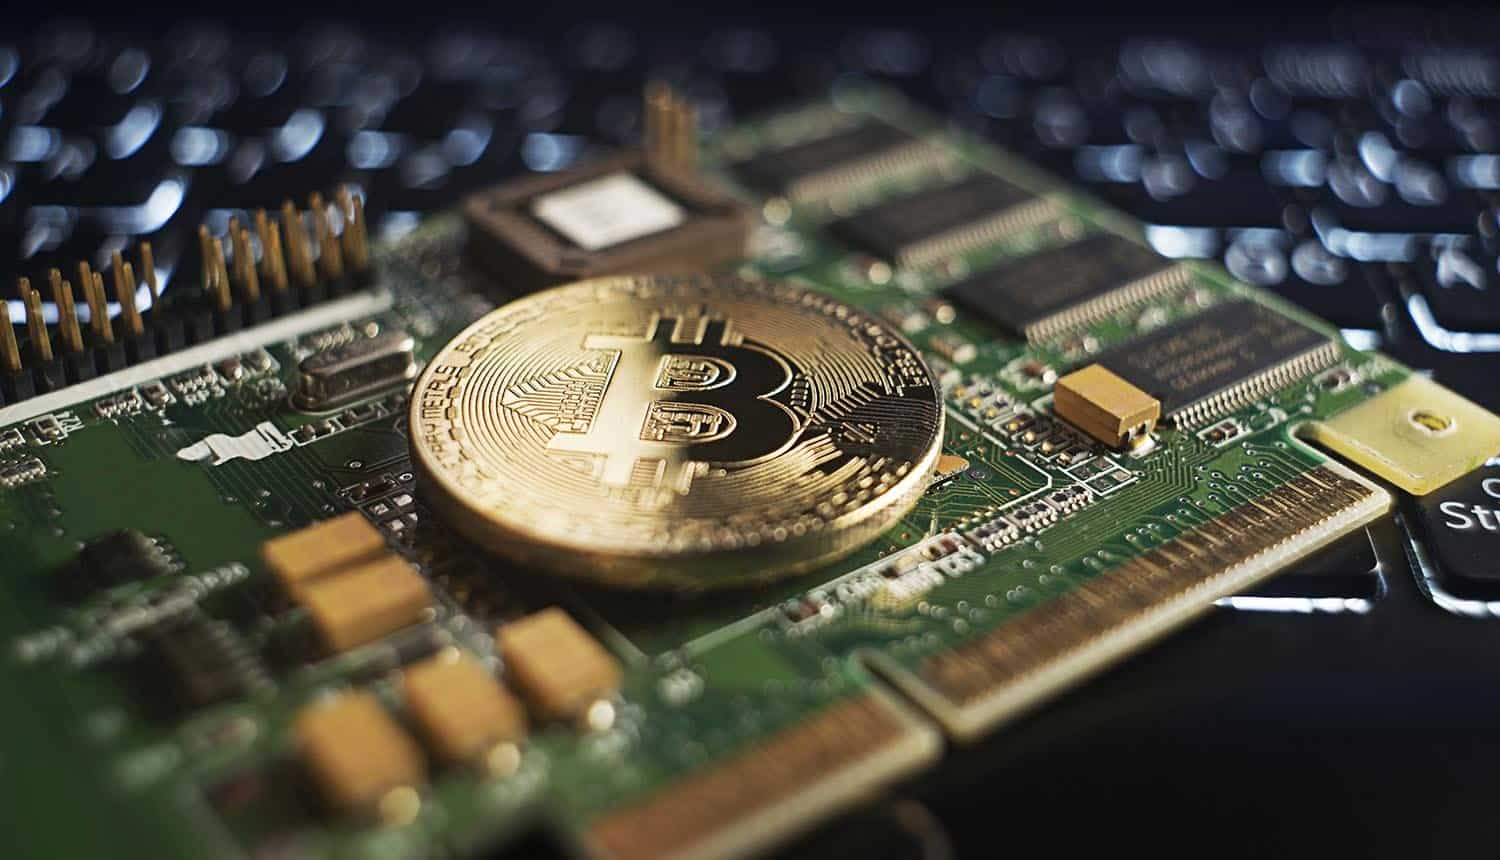 Golden coin with bitcoin symbol on a mainboard showing crypto mining scams in Android apps